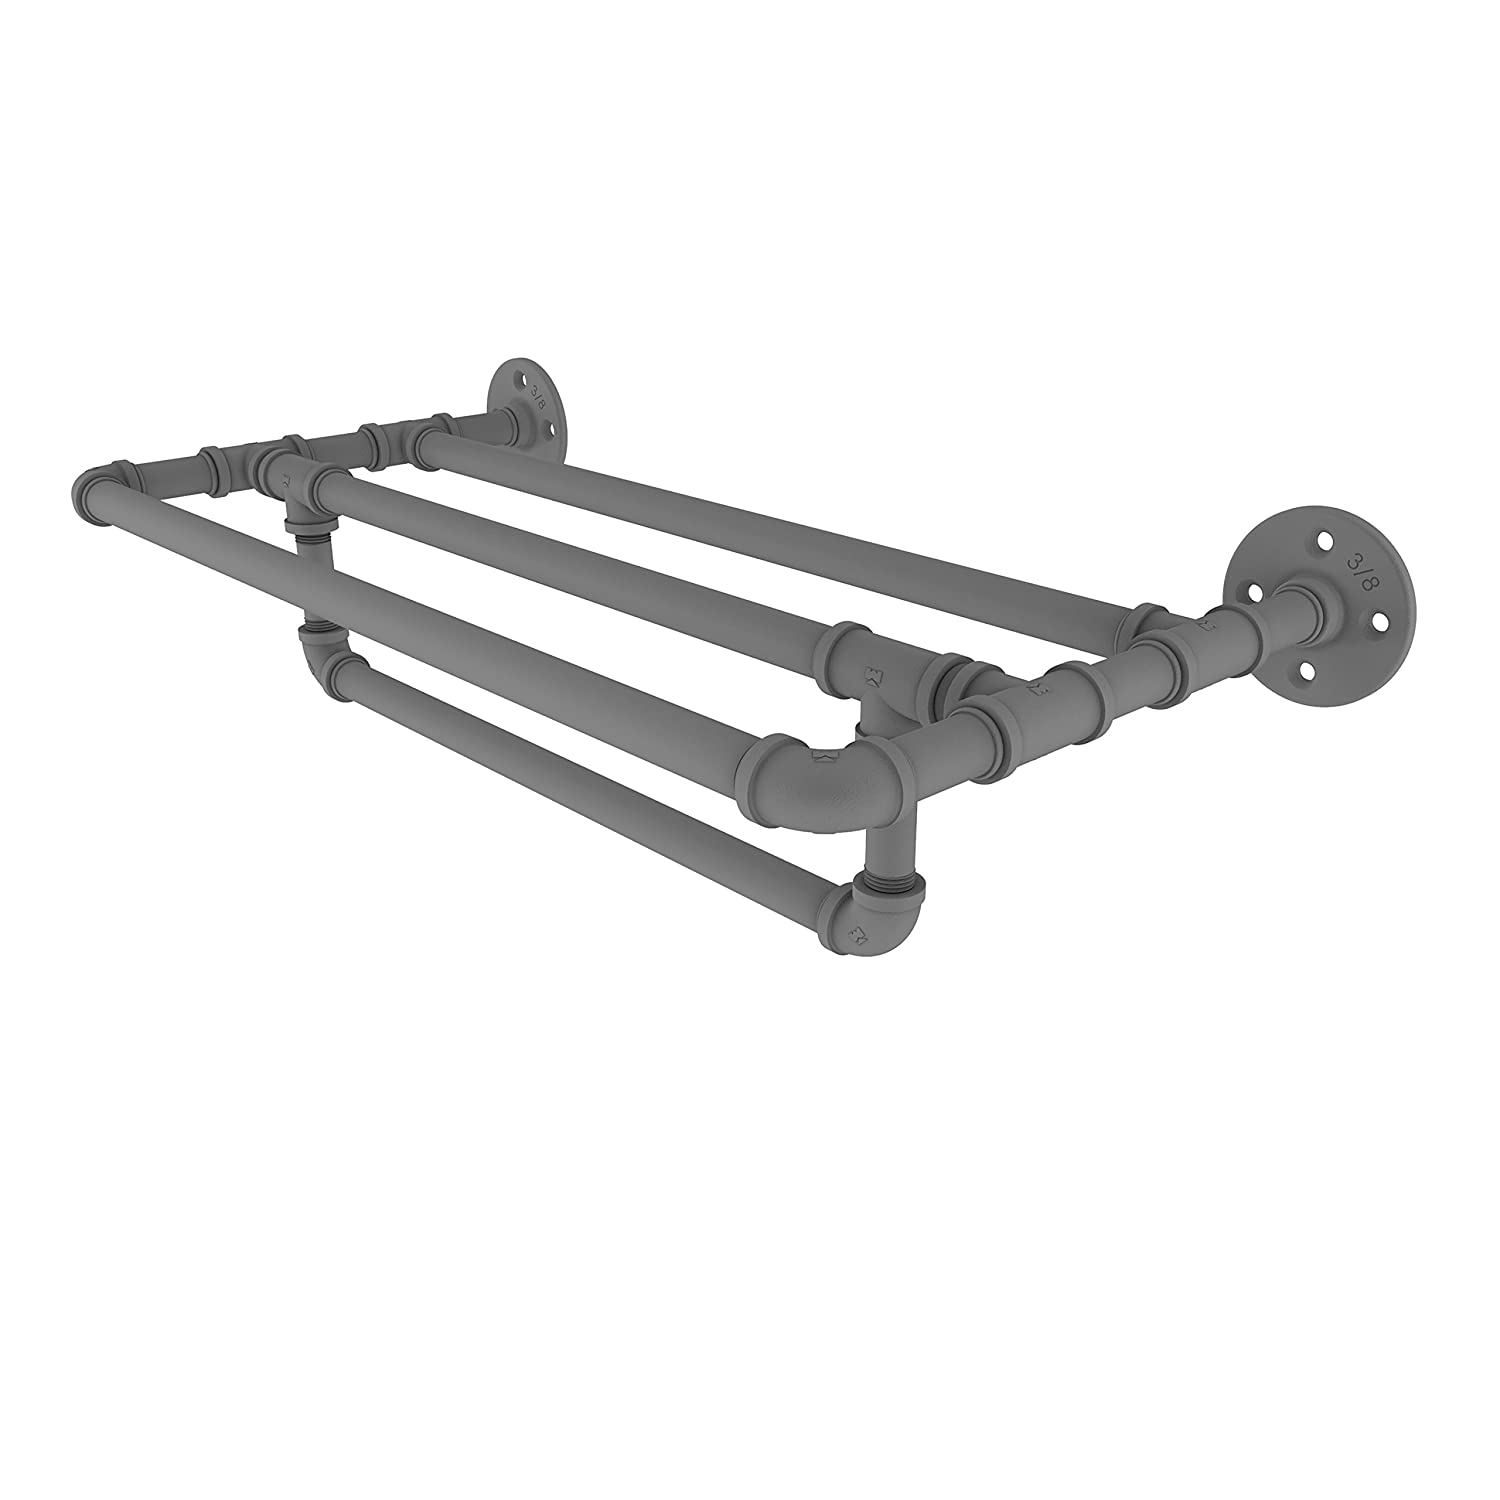 Allied Brass P-240-24-TSTB-GYM Pipeline Collection 24 Inch Wall Mounted Shelf with Towel Bar Matte Gray